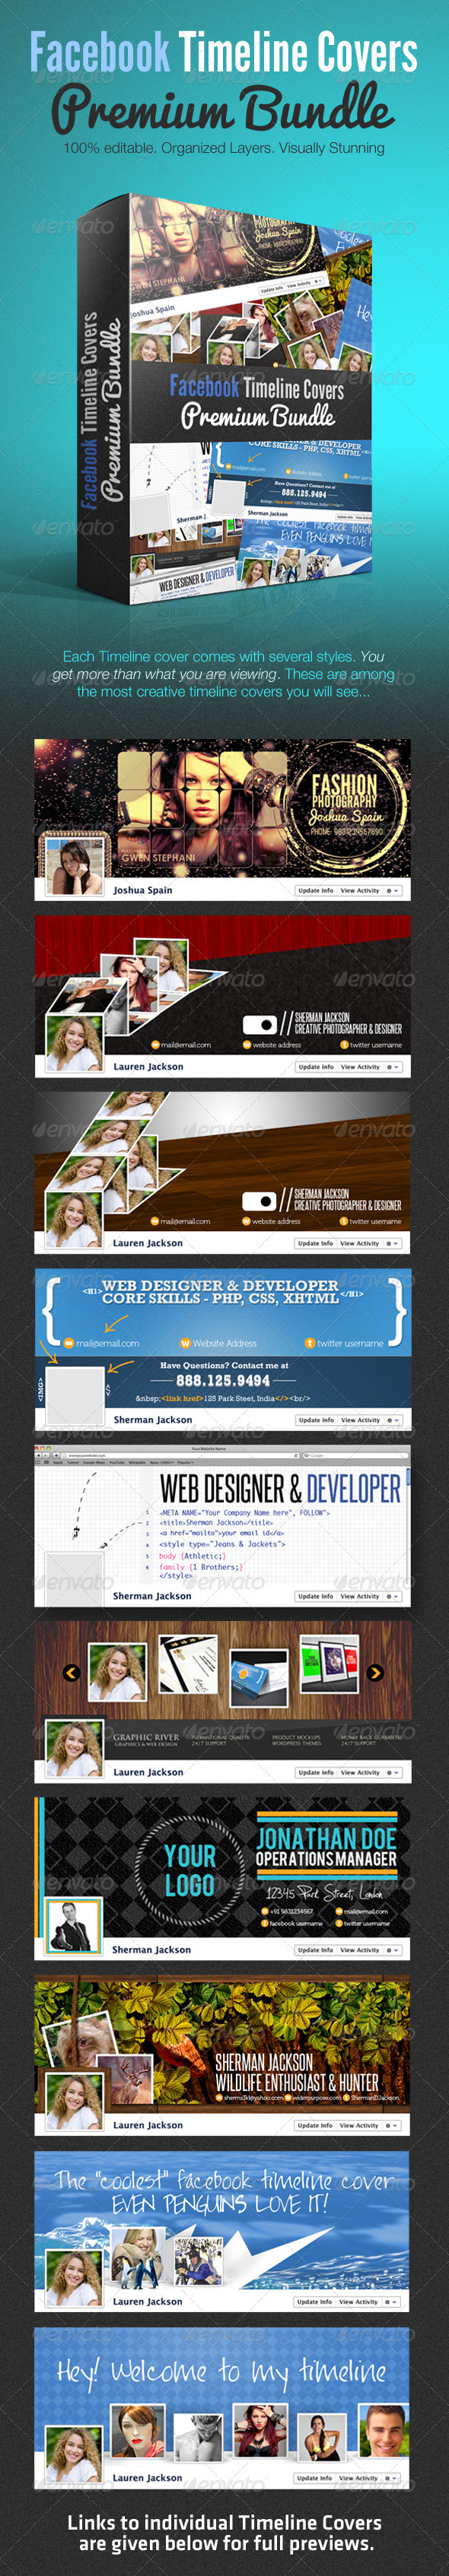 Facebook Creative Timeline Covers Premium Bundle - Facebook Timeline Covers Social Media